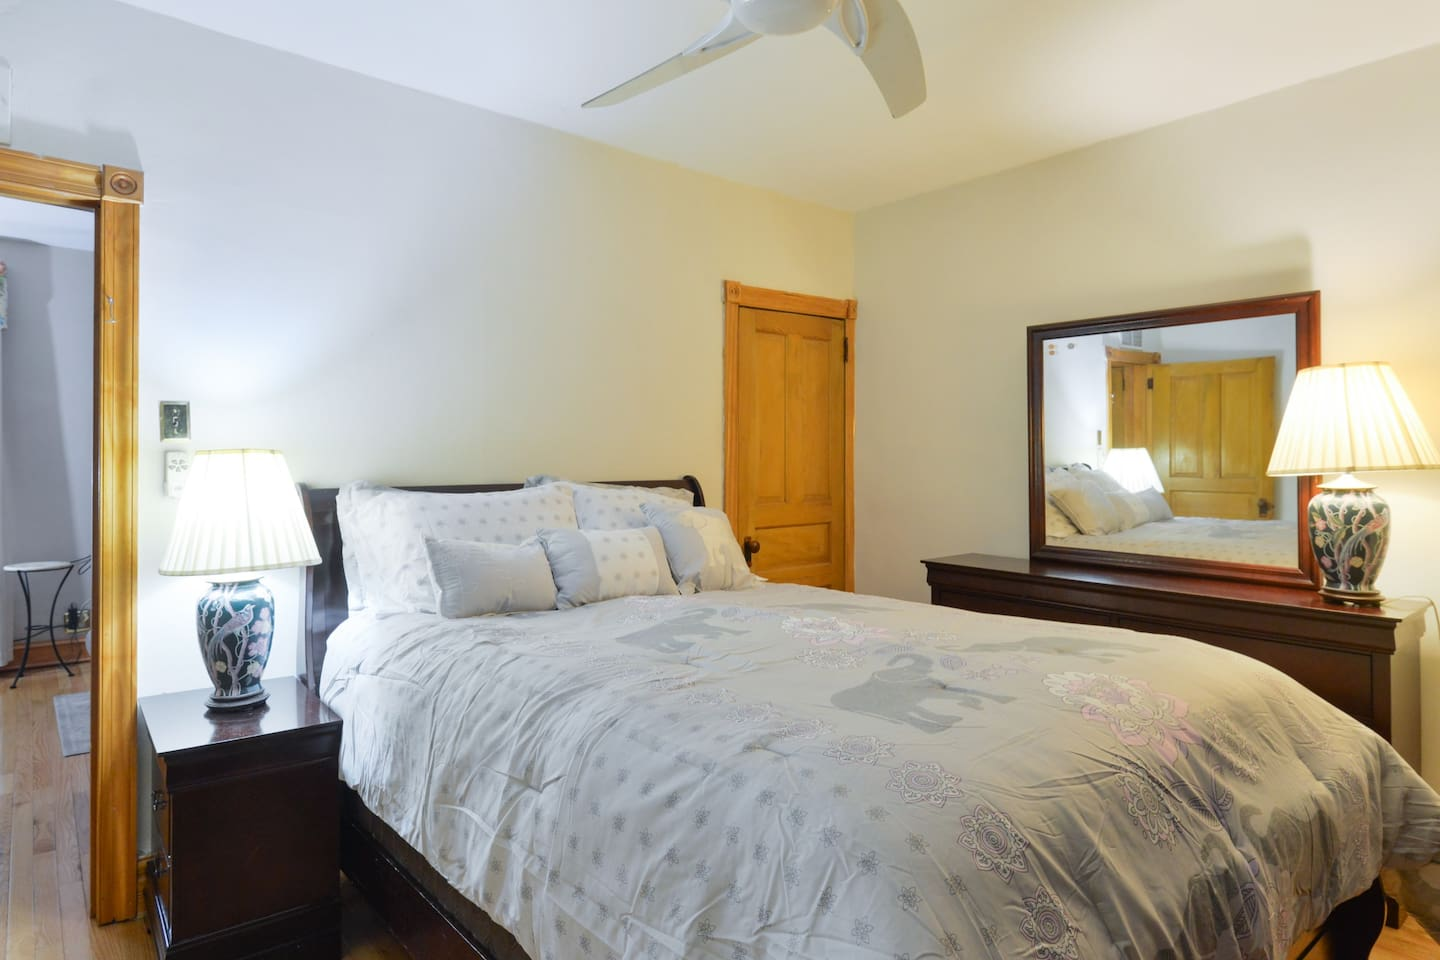 Comfortable queen size bed in a bright and spacious master bedroom